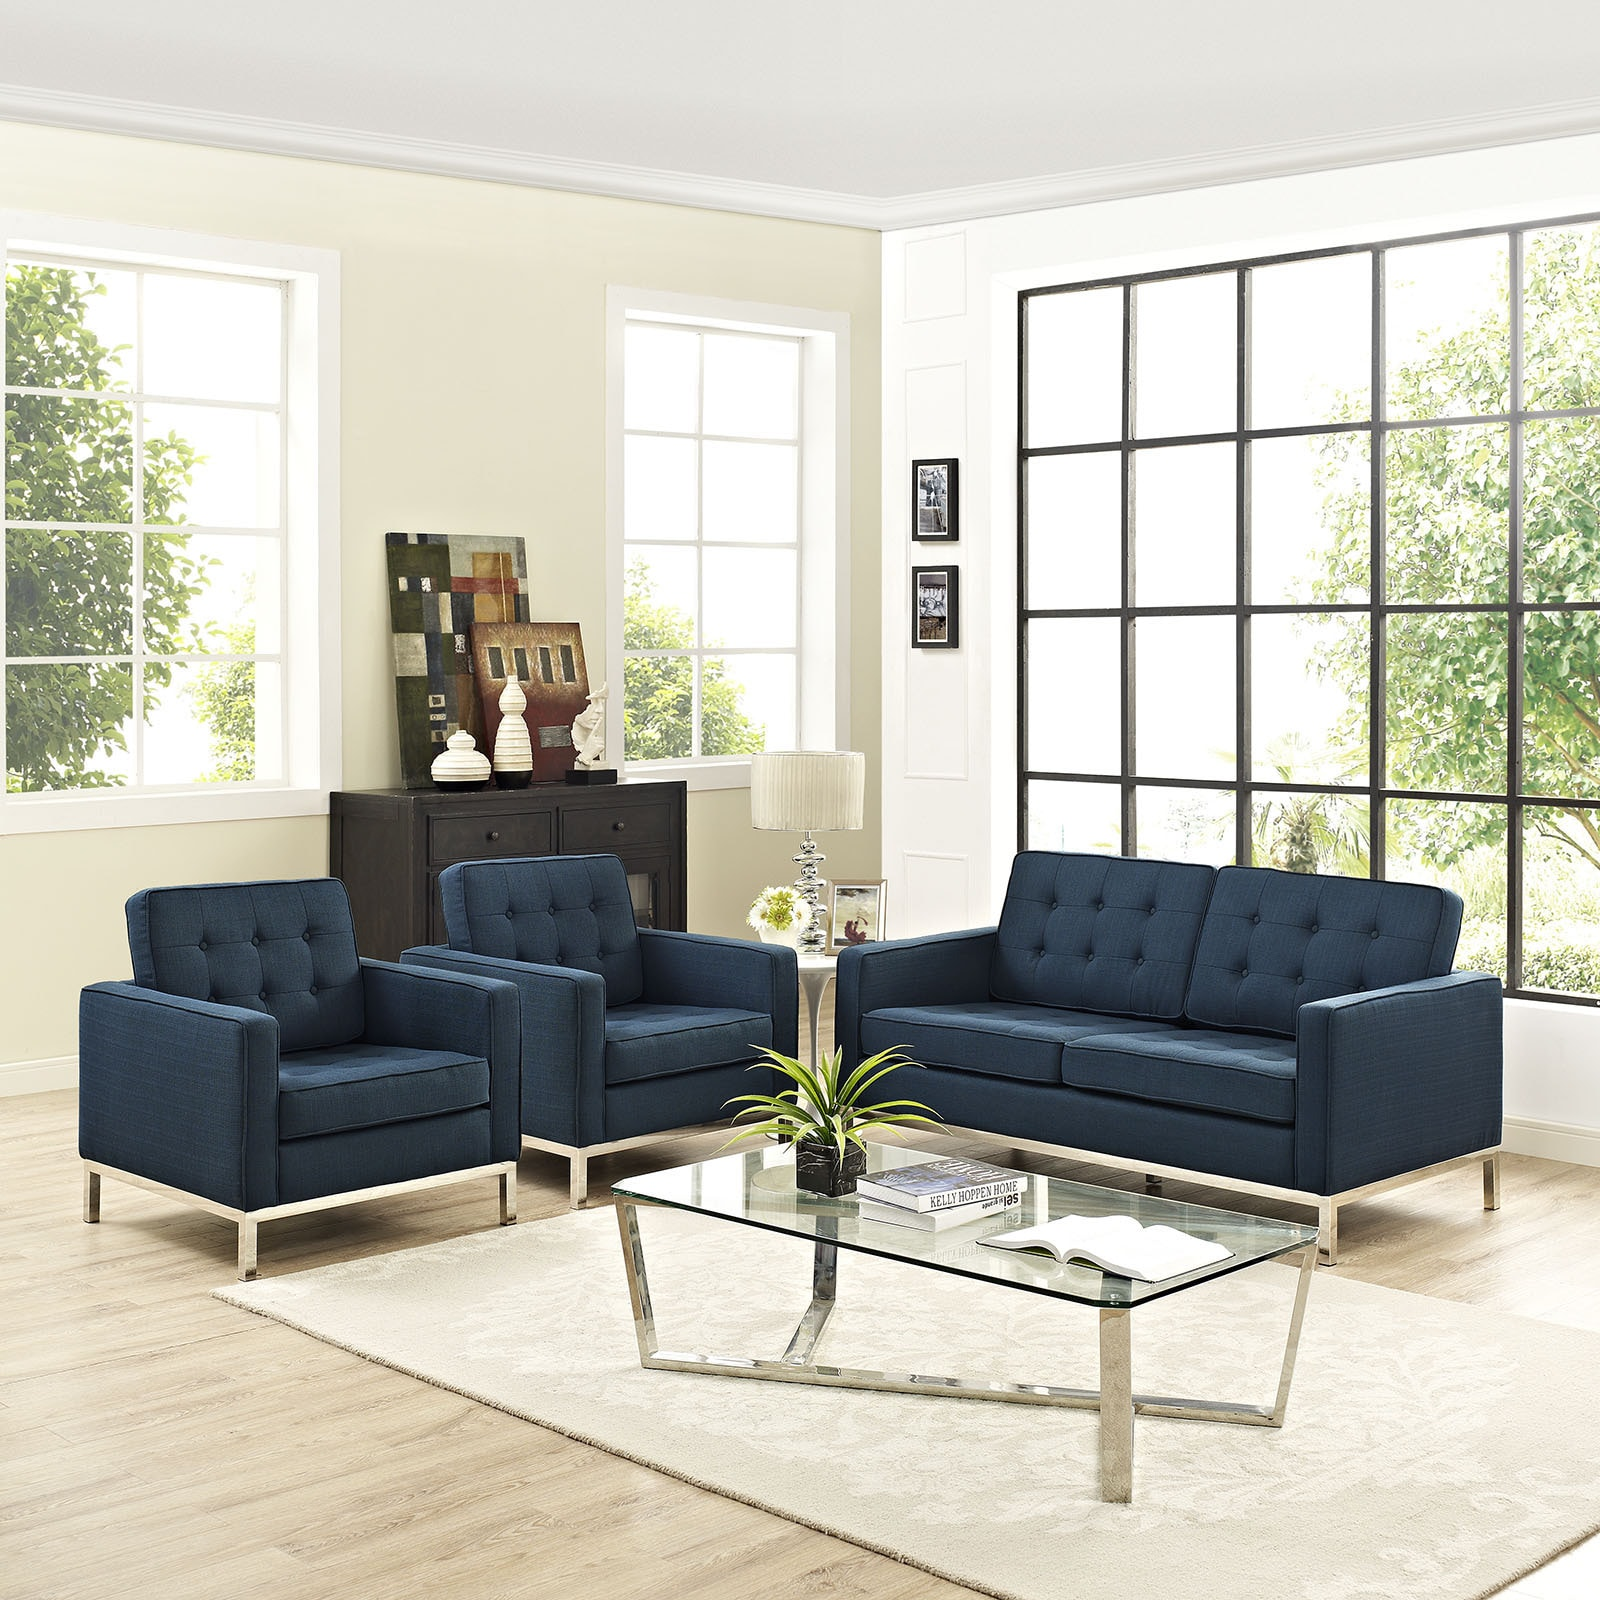 Stainless Steel Sofas & Couches For Less | Overstock